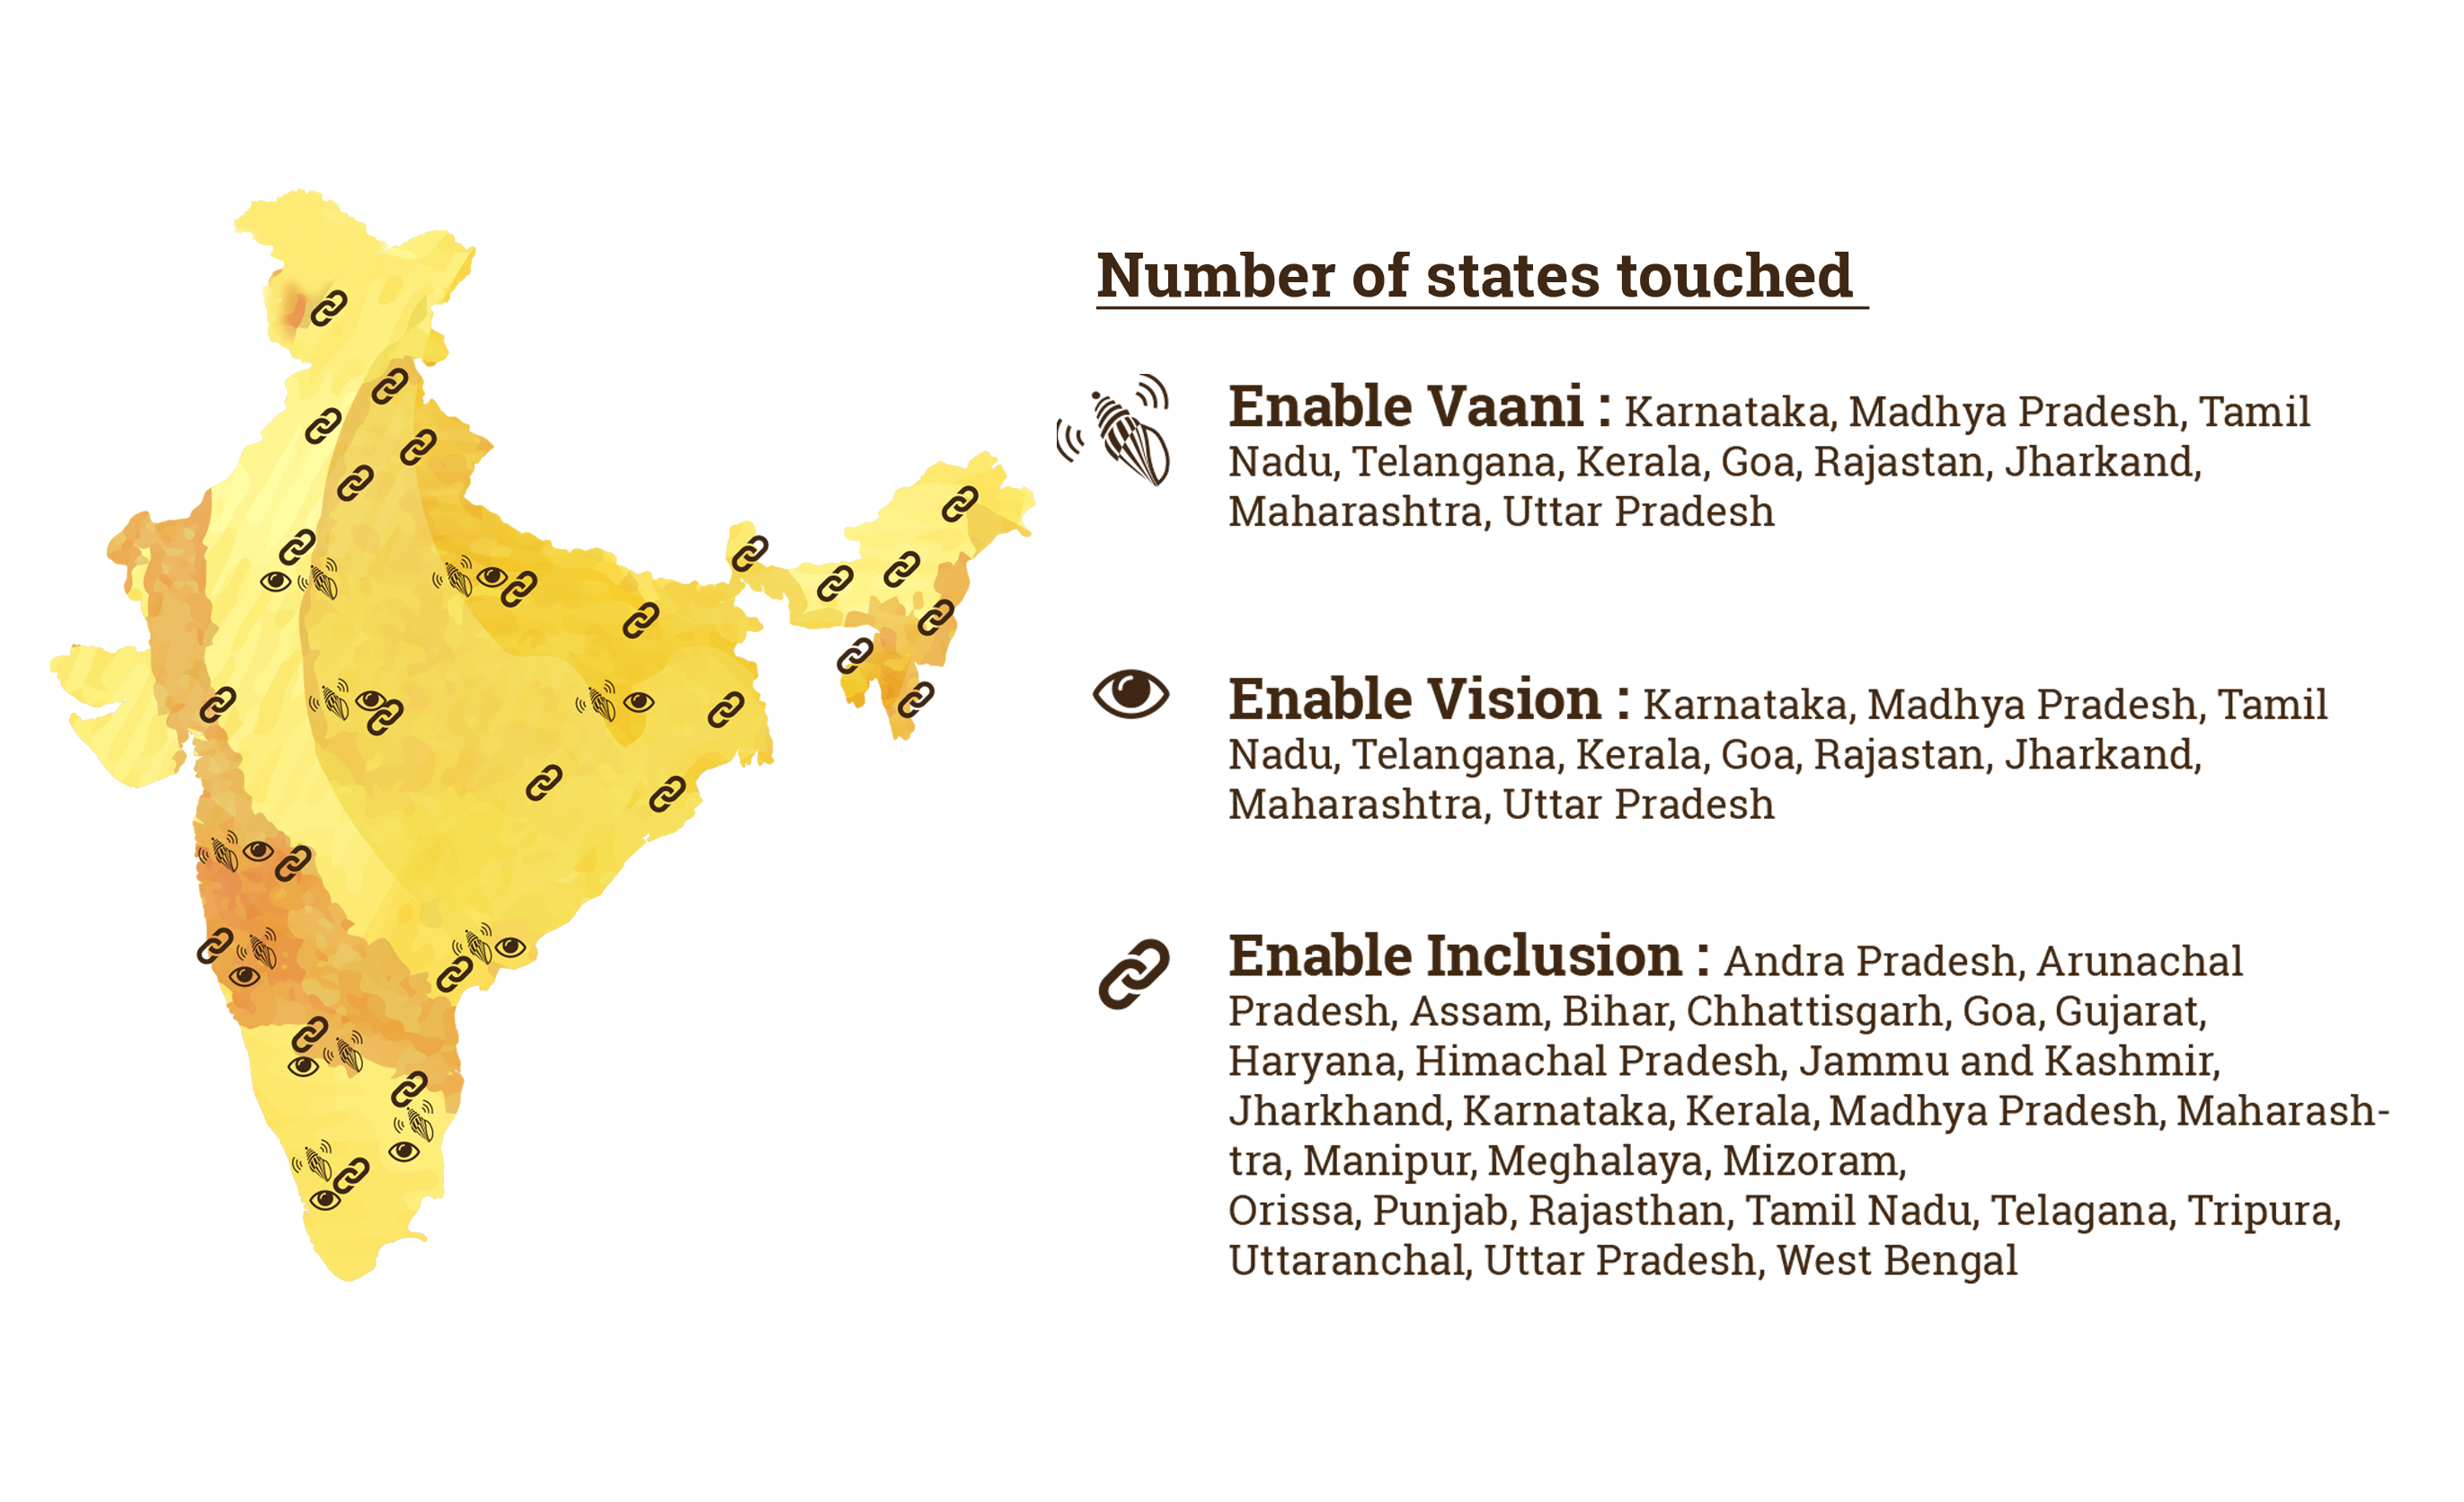 Graph of India Map with places highlighted where Enable Vaani, Enable Inclusion and Enable Vision programs made an impact